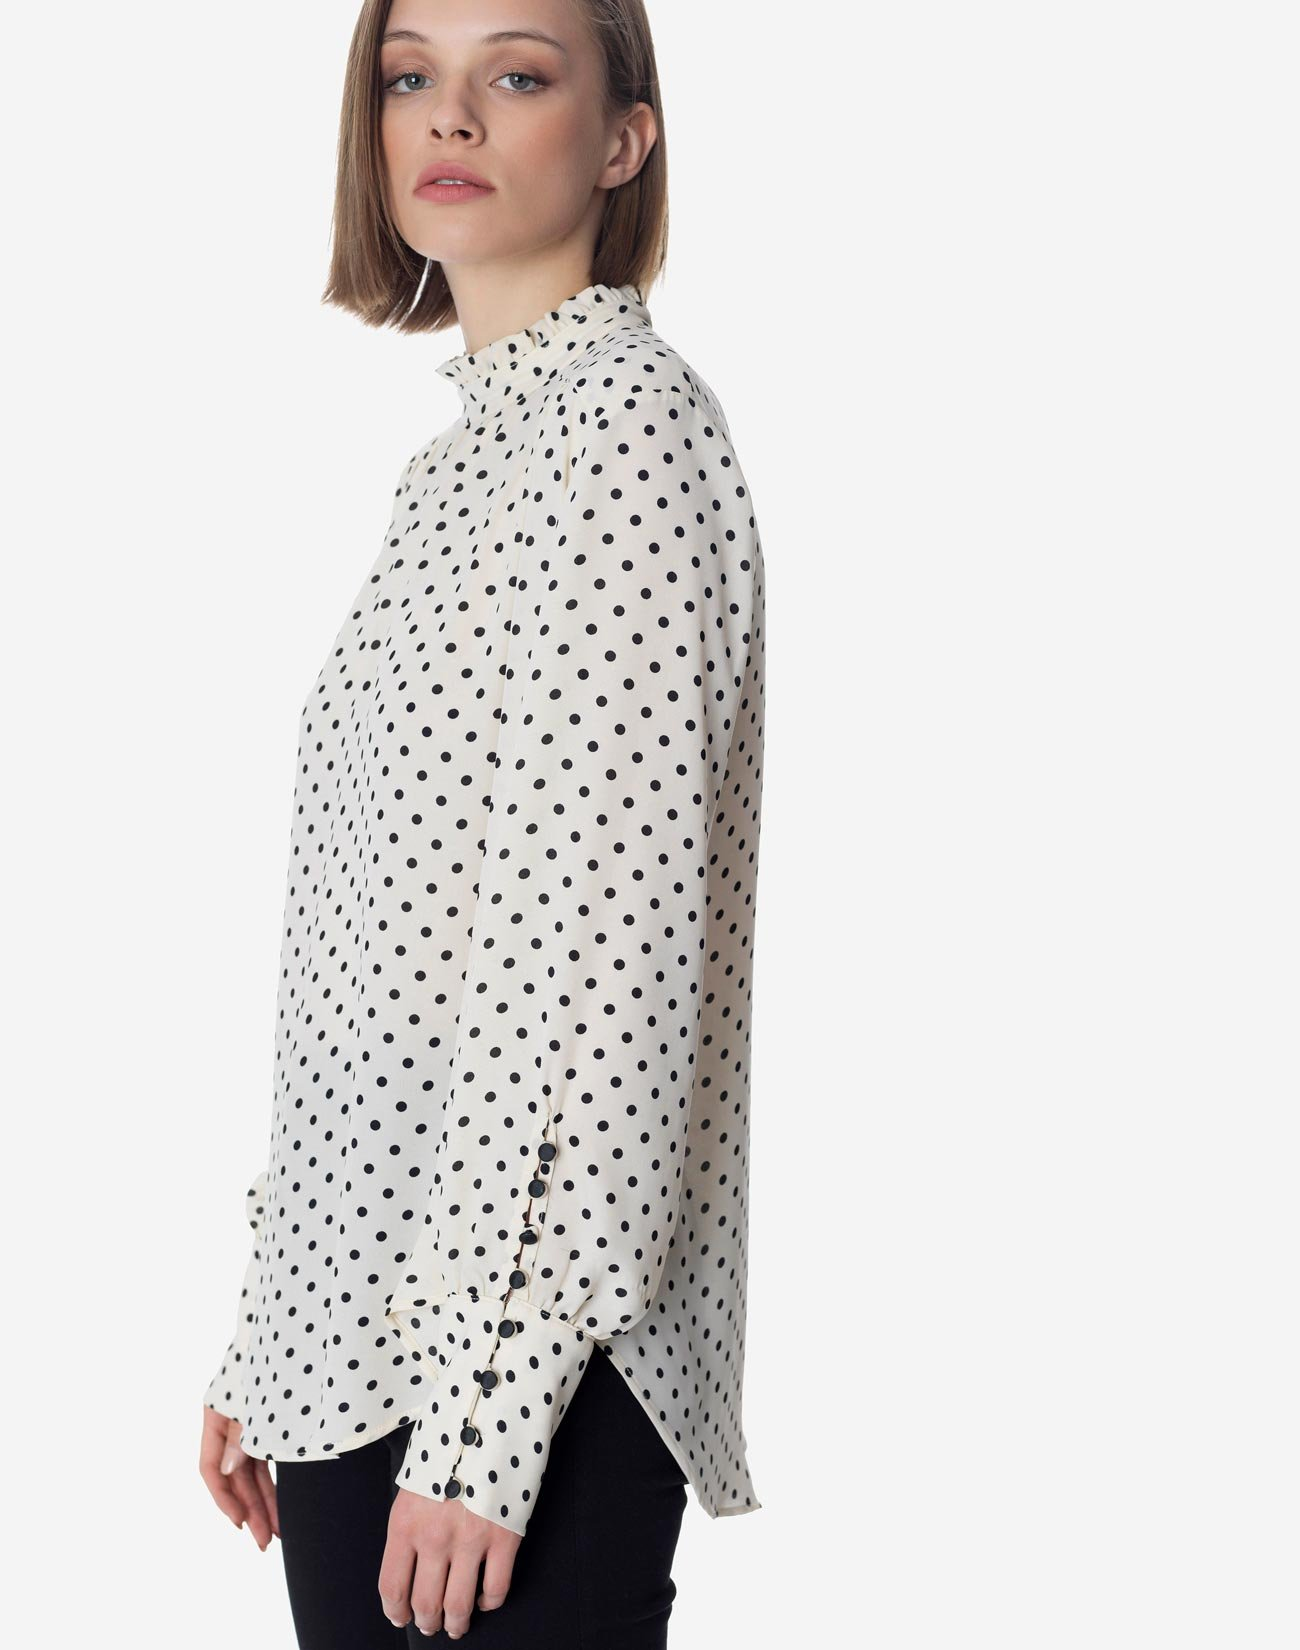 Polka dot blouse with high neck